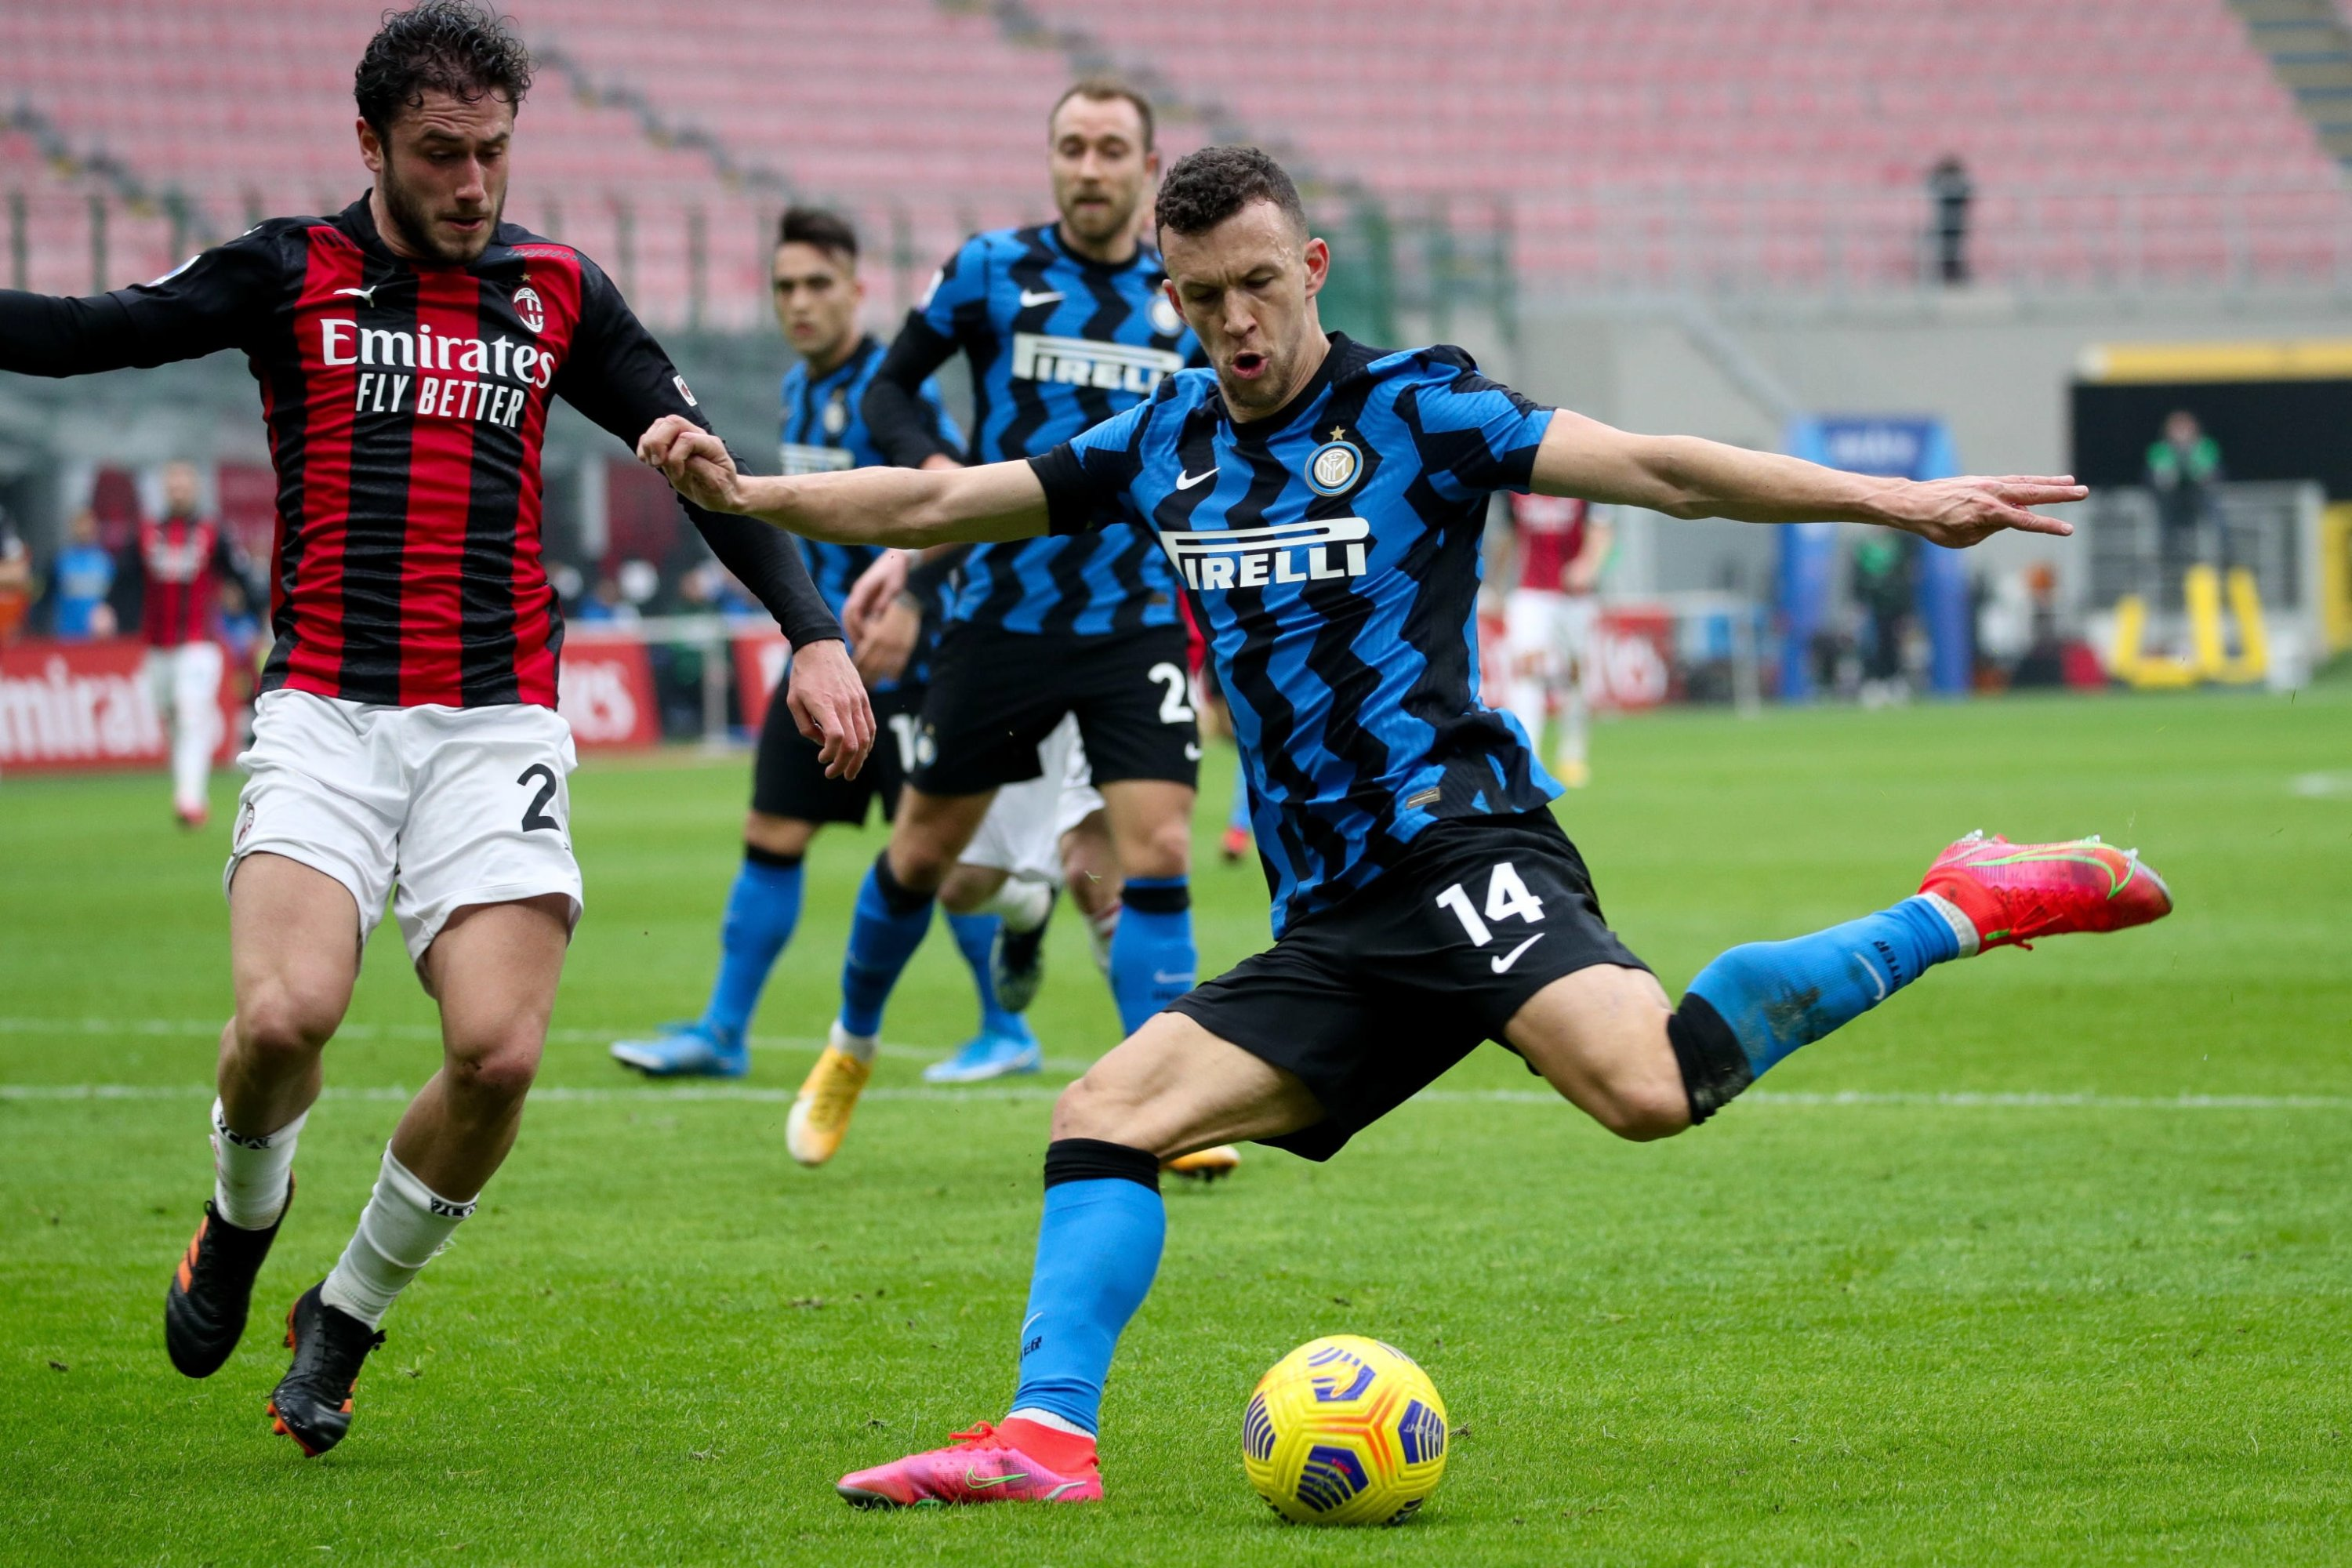 Inter midfielder Ivan Perisic (R) and AC Milan defender Davide Calabria during a match at the Giuseppe Meazza Stadium, Milan, Italy, Feb. 21. 2021. (EPA Photo)